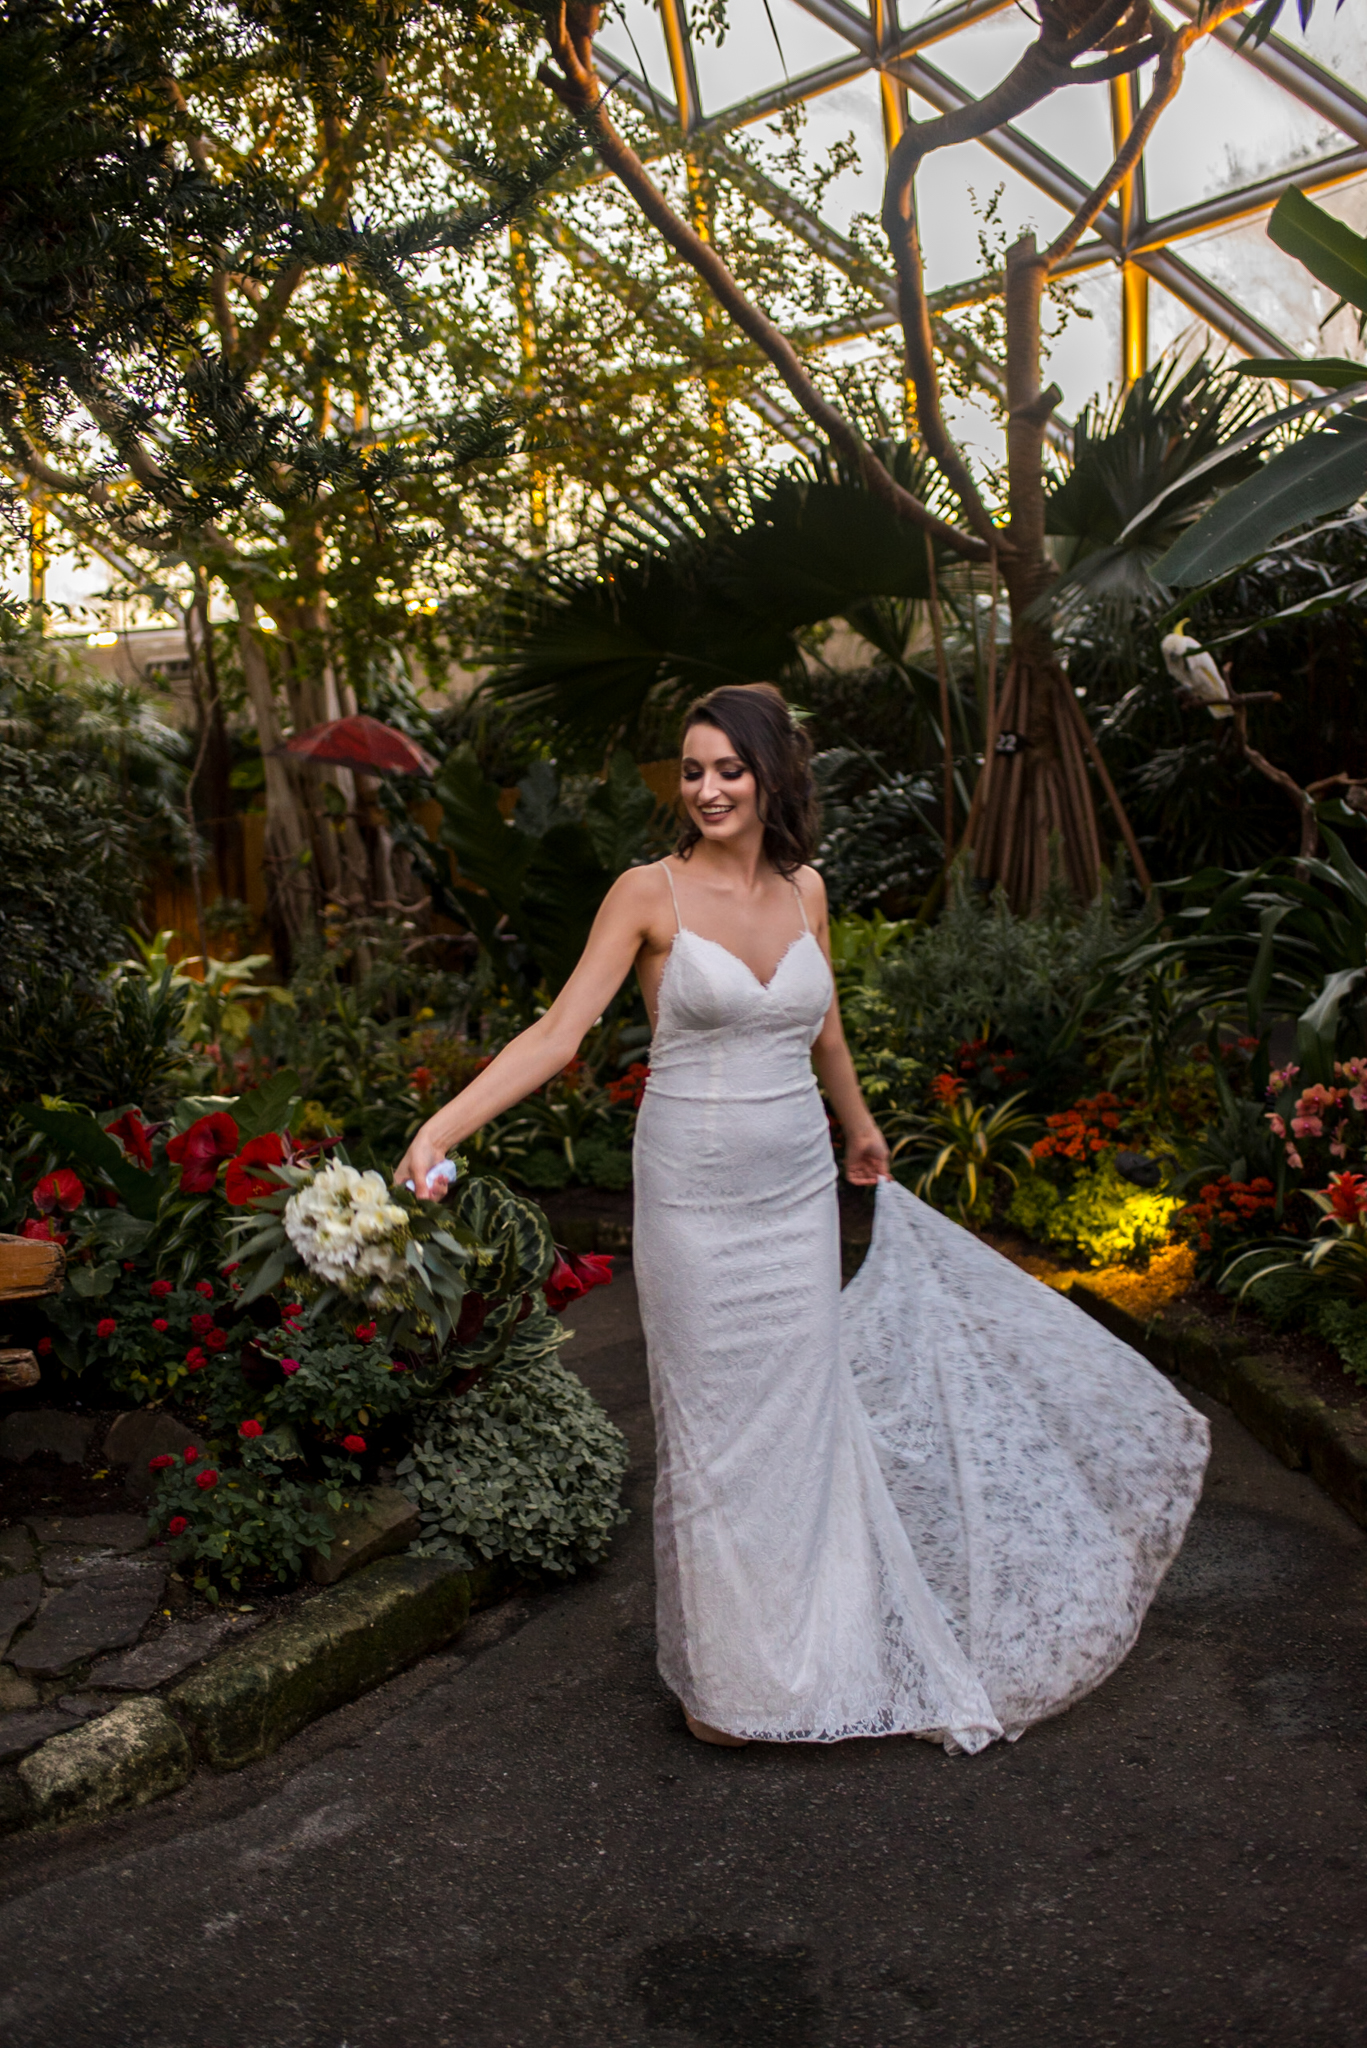 Queen Elizabeth Park Wedding Photographer-77.jpg